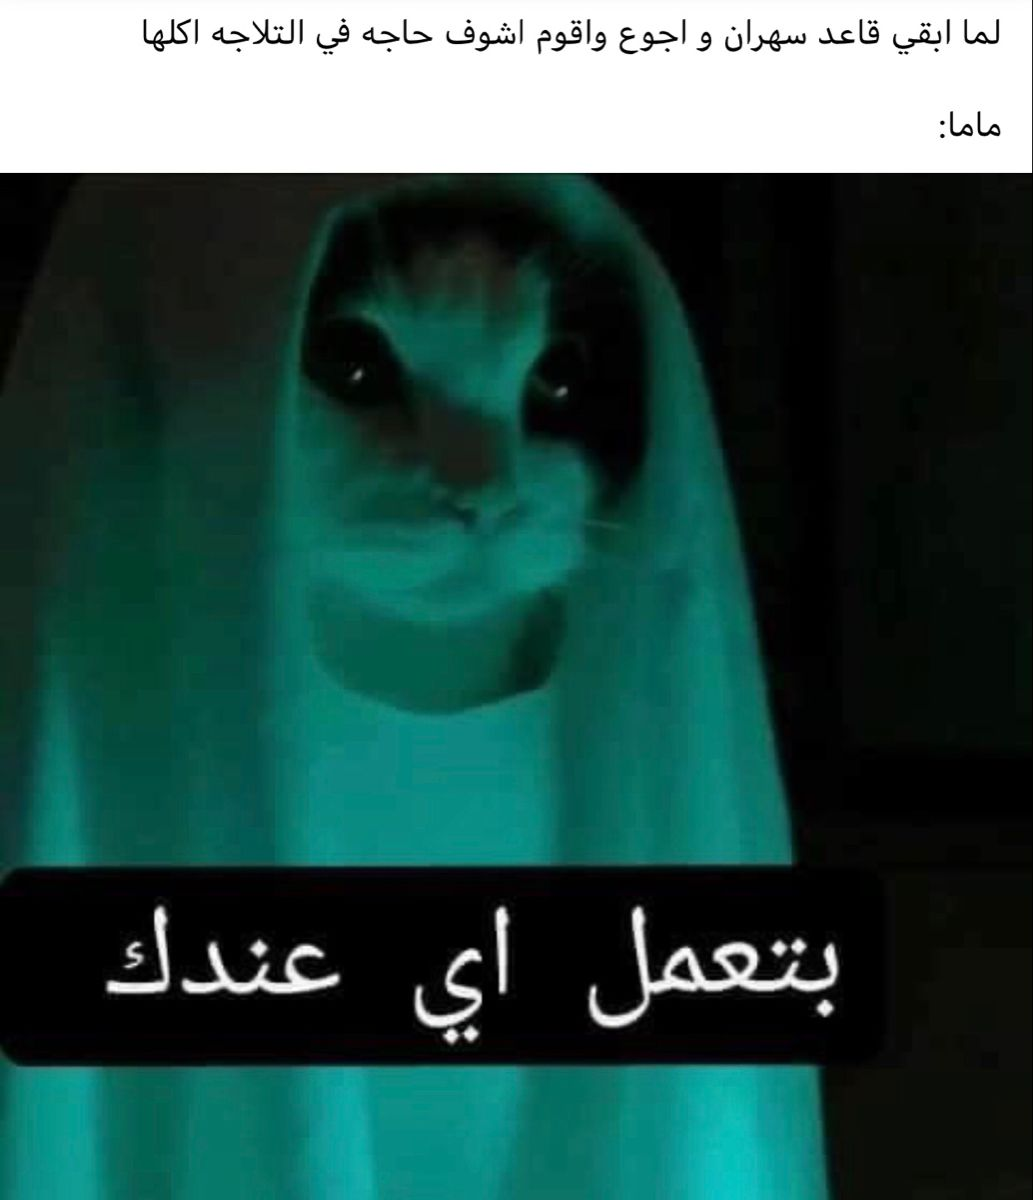 Pin By Imen Imen On مضحك أو صحيح Funny Prank Videos Funny Picture Jokes Funny Reaction Pictures